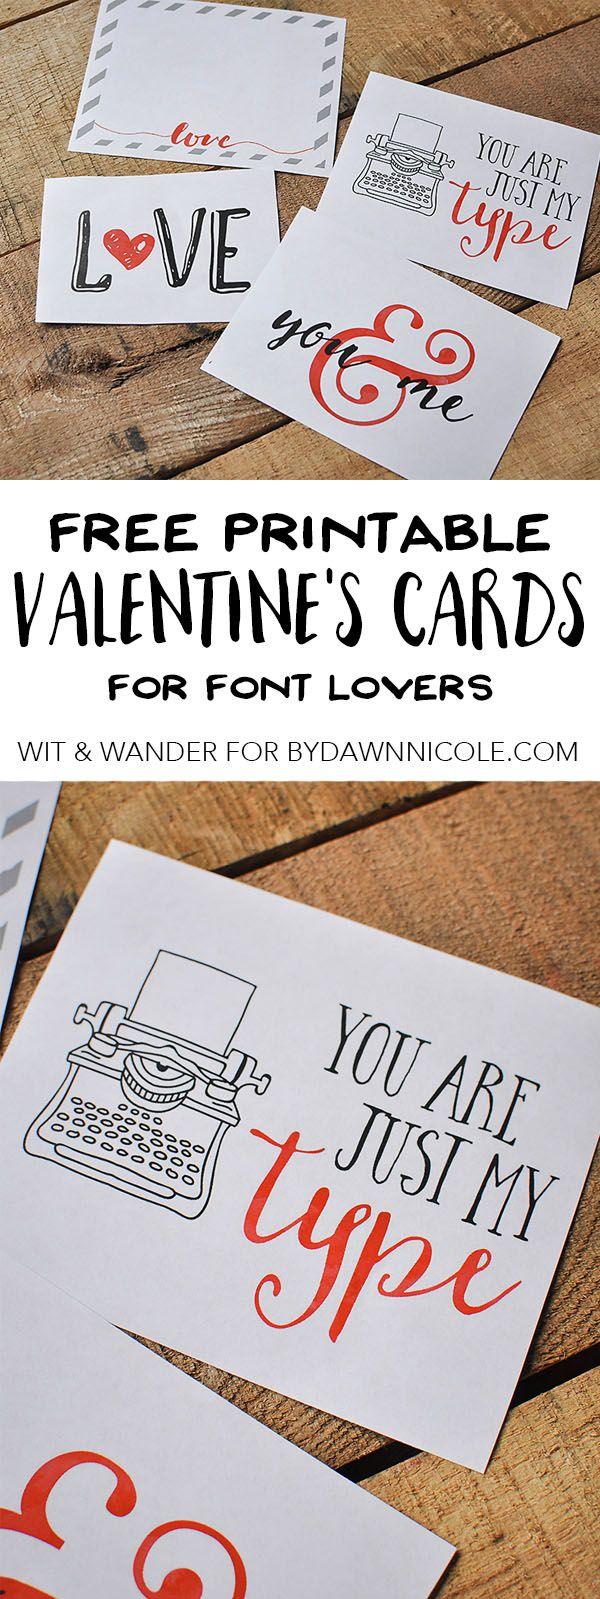 25 best ideas about Printable valentine – Free Online Printable Valentine Cards